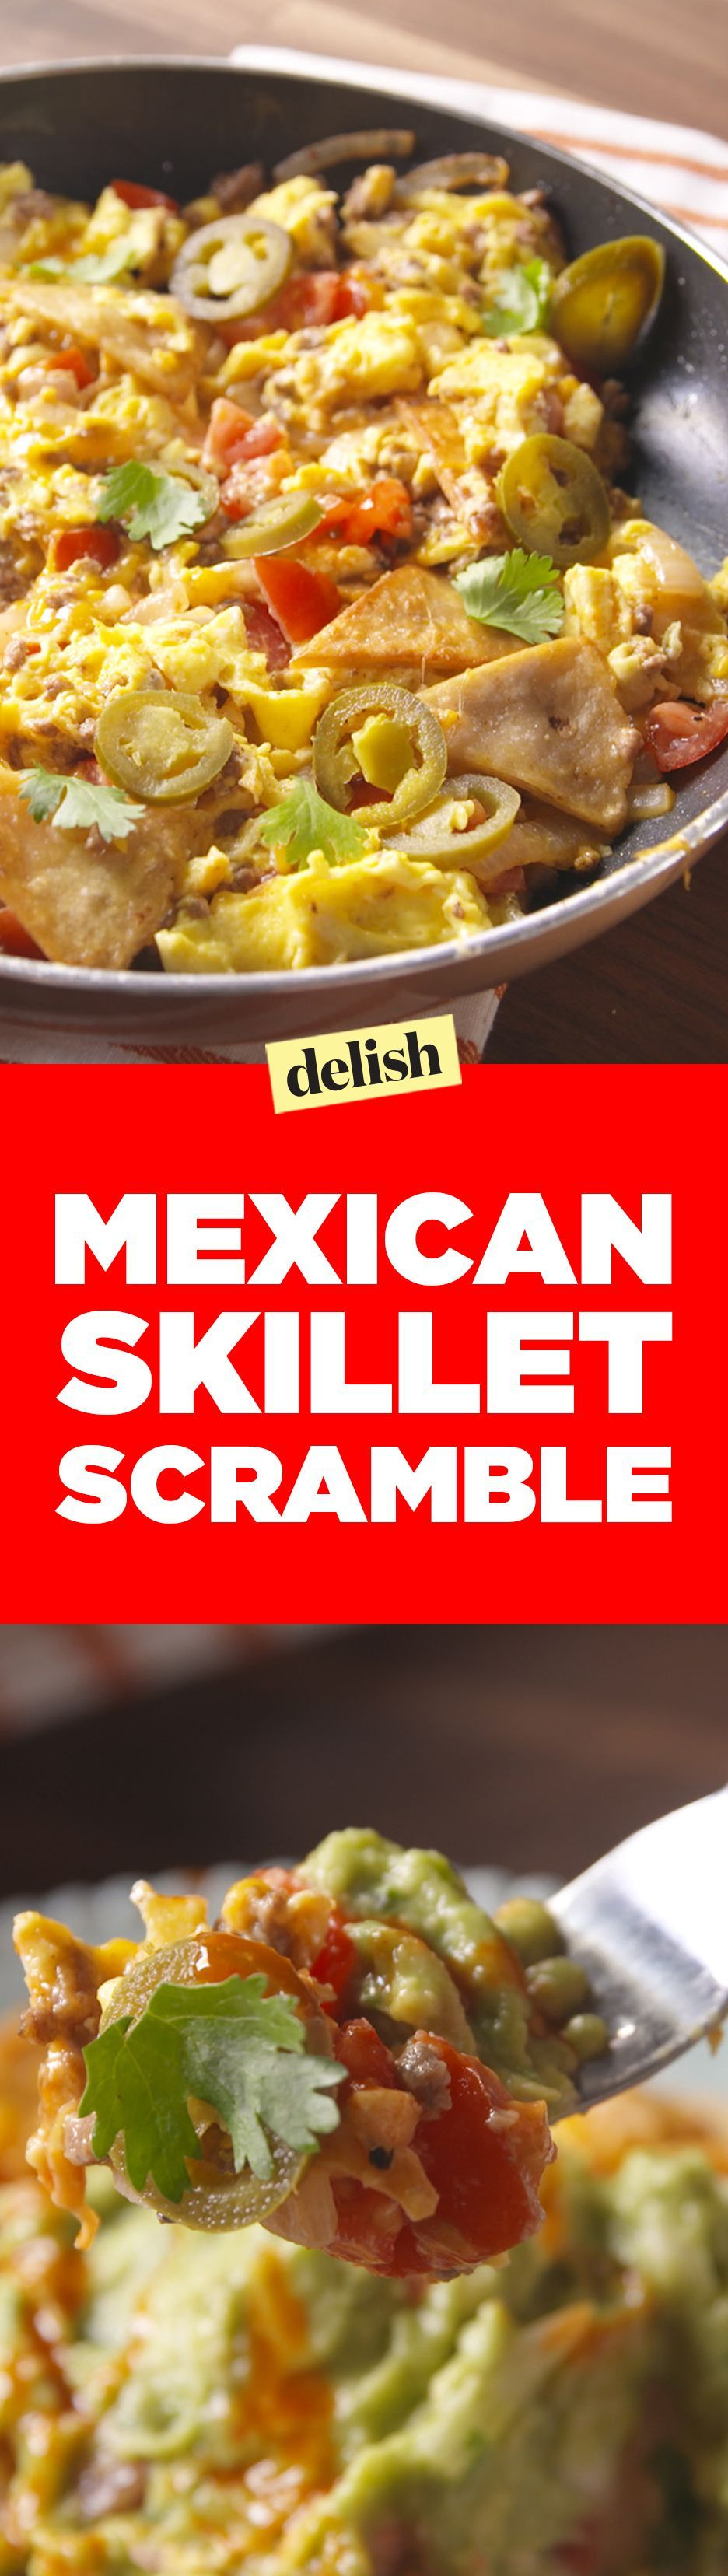 Skillet Scramble This Mexican Skillet Scramble is so much better than making breakfast burritos. Get the recipe on .This Mexican Skillet Scramble is so much better than making breakfast burritos. Get the recipe on .